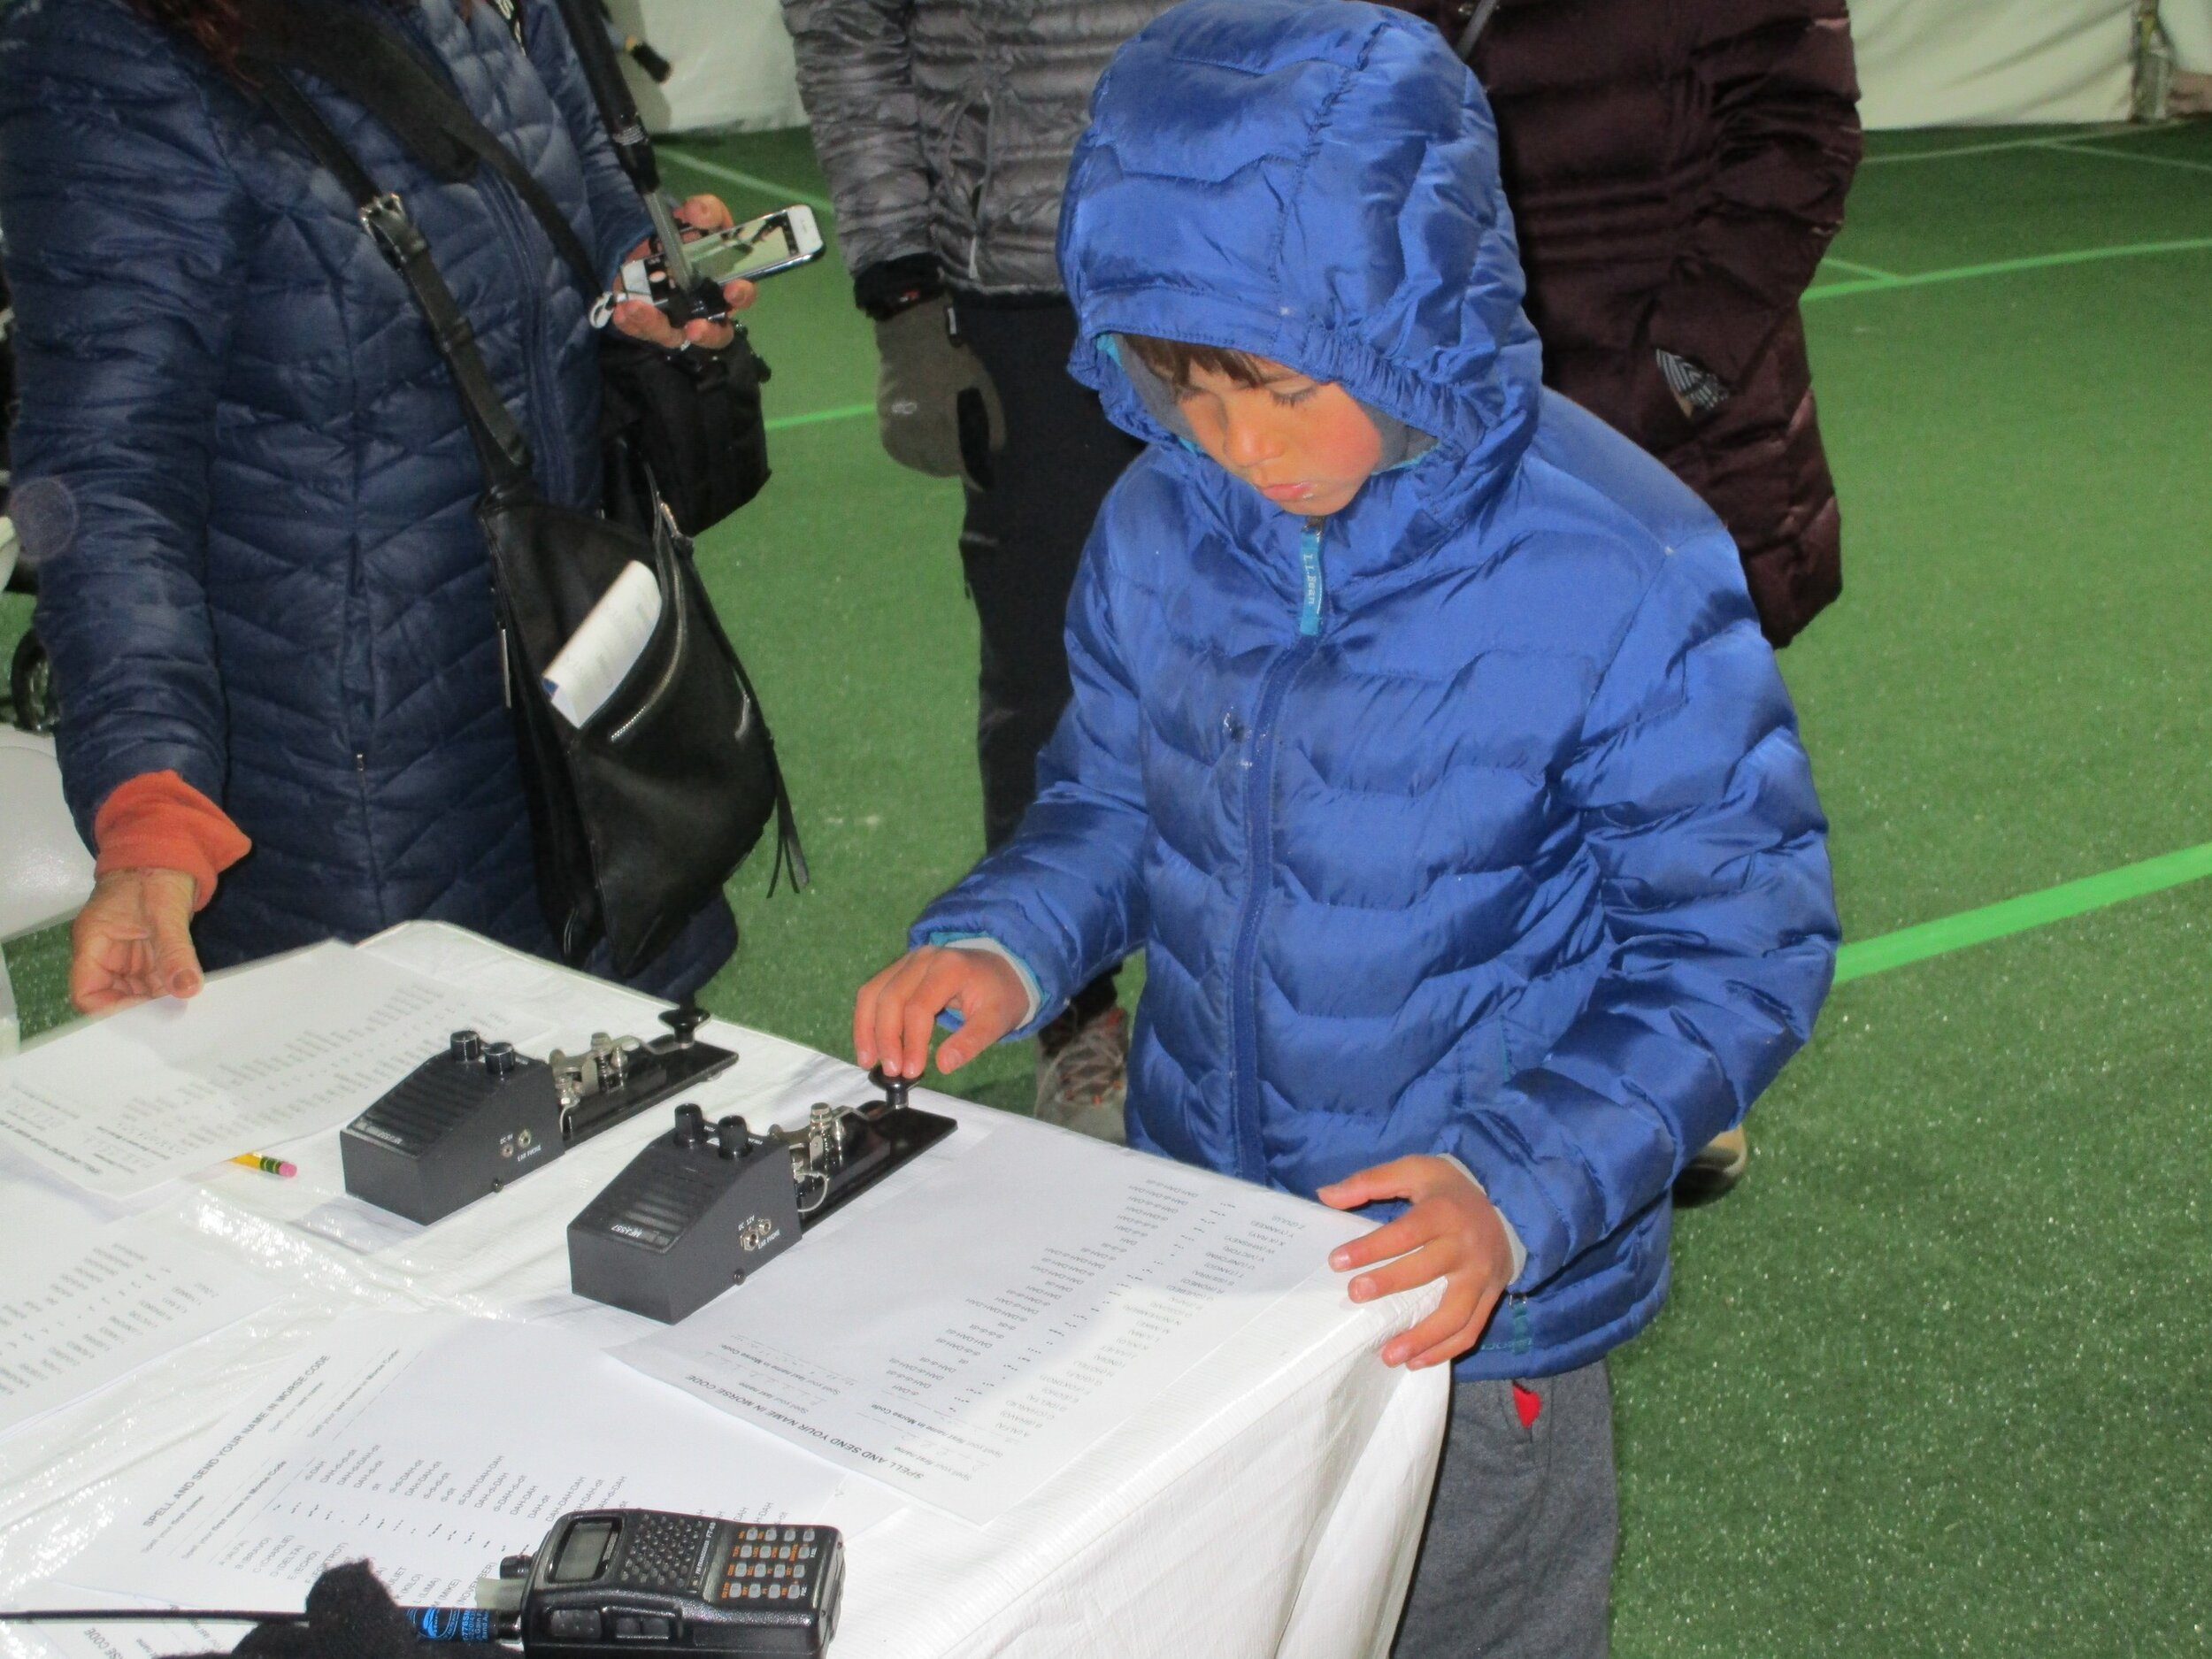 A young man tapping out his name in Morse Code.